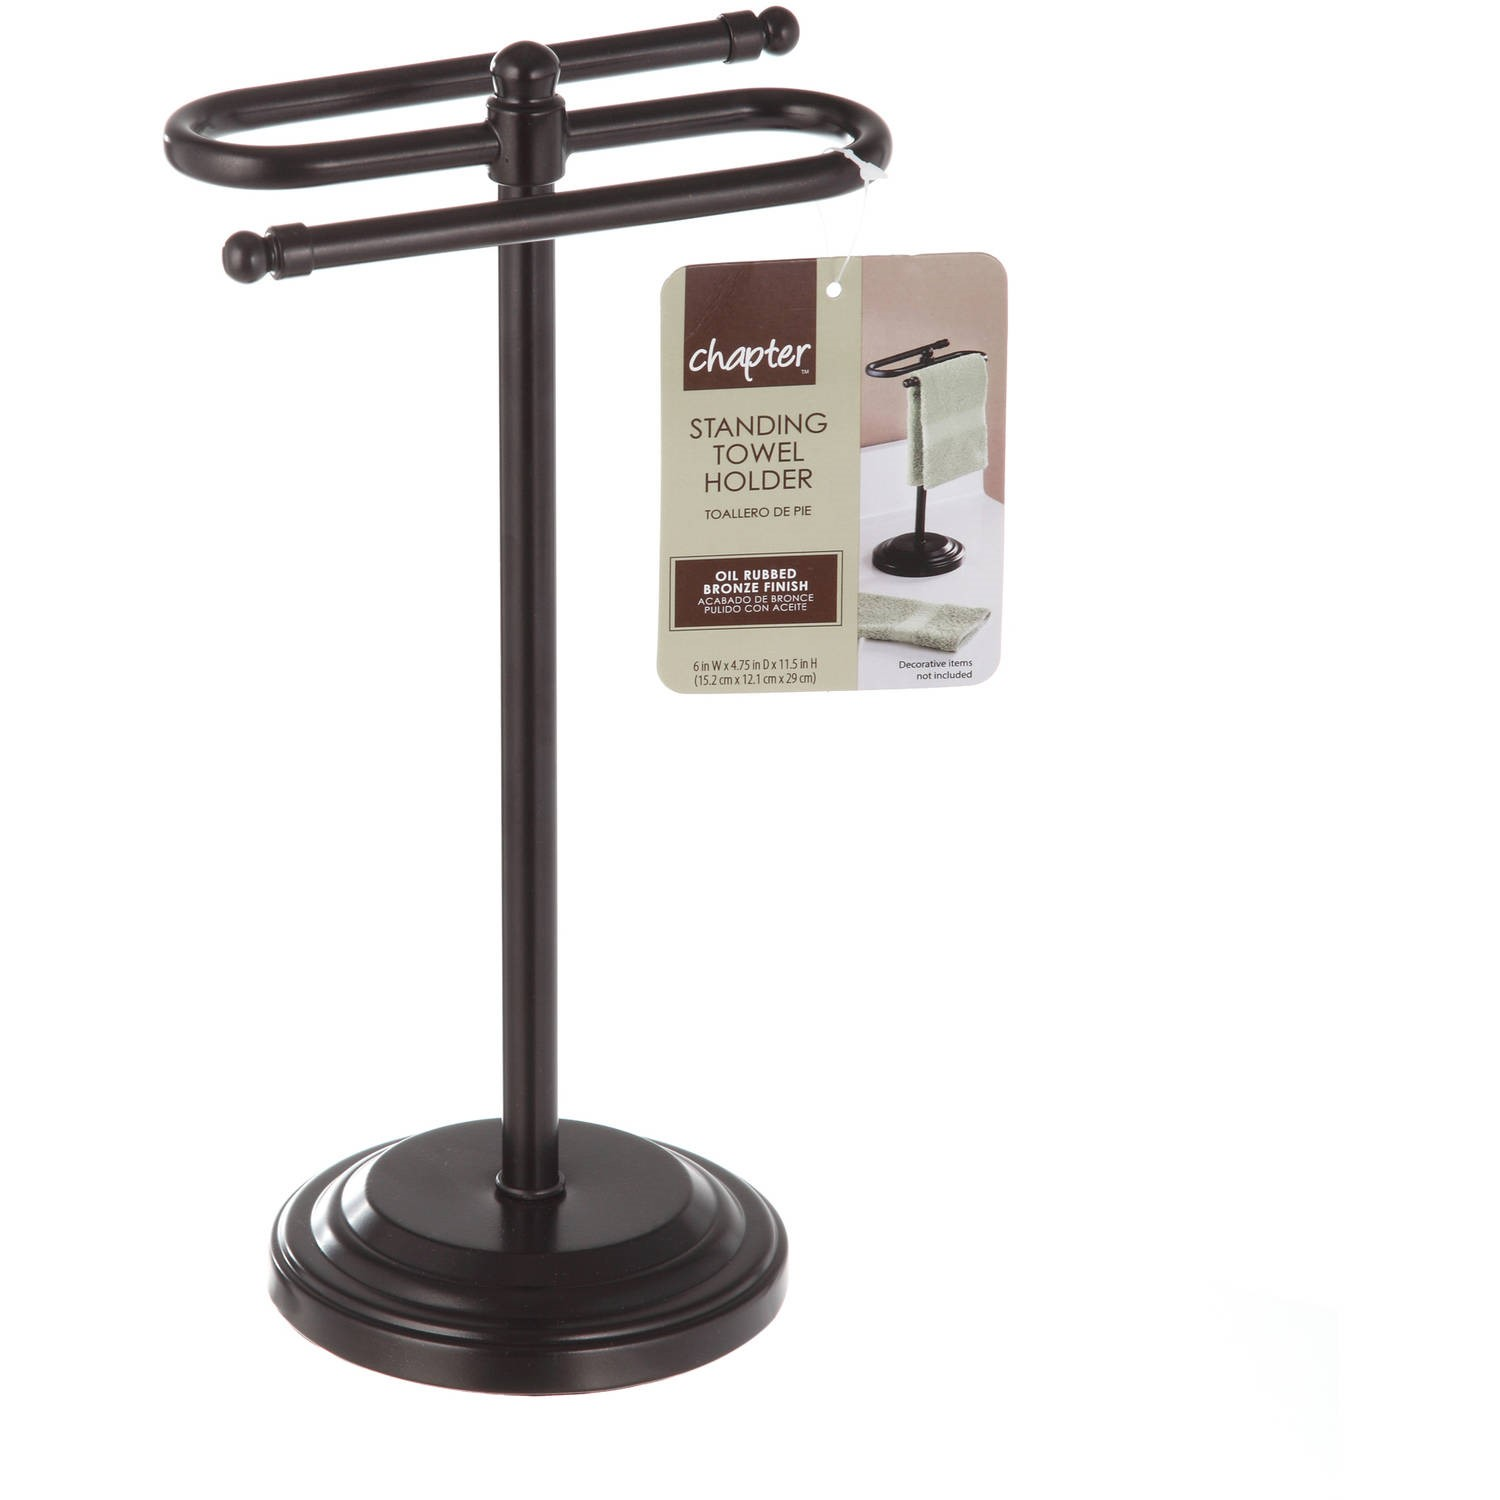 Chapter Free Standing Towel Holder   Oil Rubbed Bronze